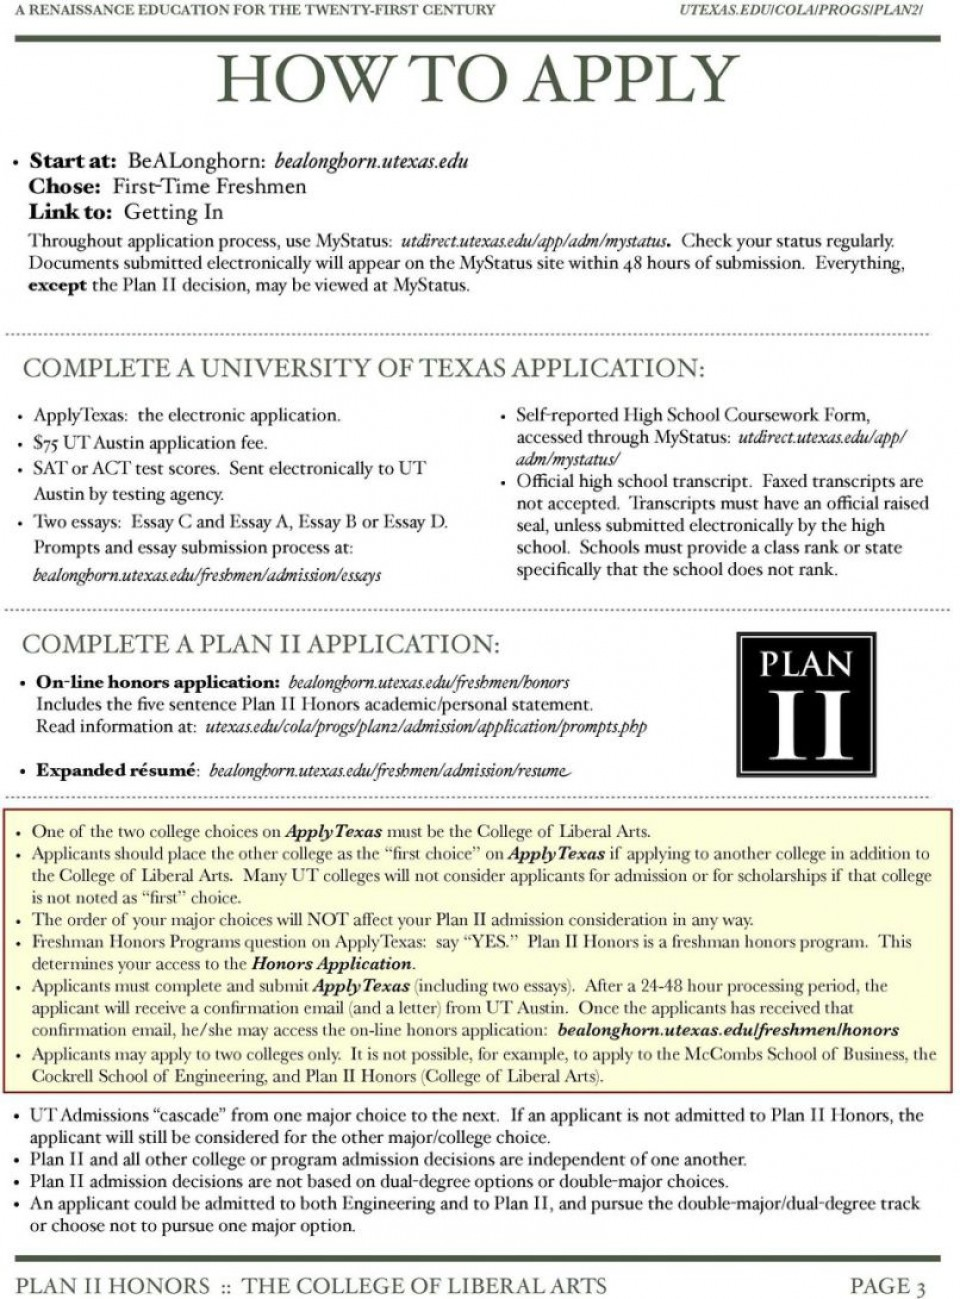 005 Applytexas Essay Prompts Poemdoc Or Apply Texas Topics P Fearsome Format Fall 2018 Length 960